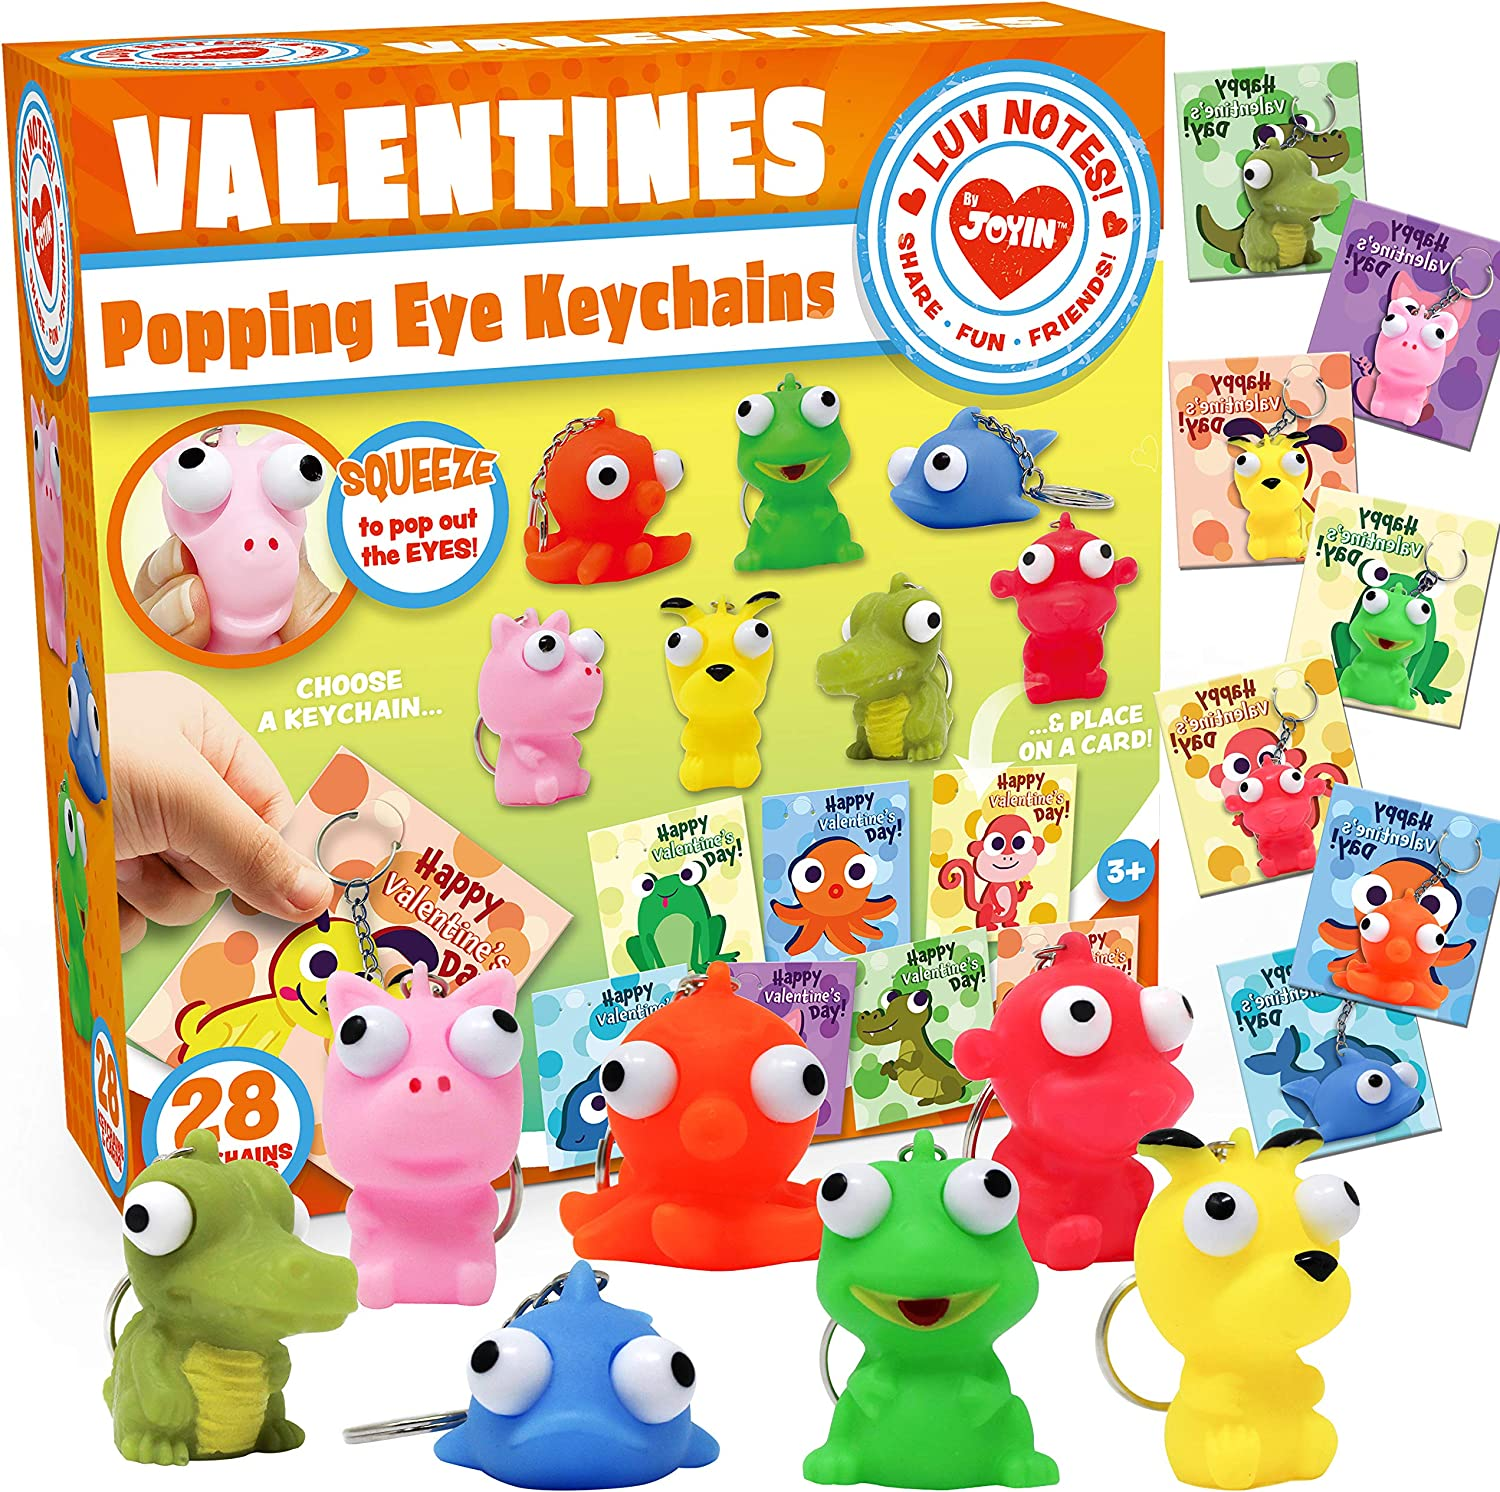 28 Packs Valentine's Day Gift Card with Popping Eyes Animal Keychains for Kids Party Favor, Classroom Exchange Prizes, Valentine's Greeting Cards including popping eye animal keychains